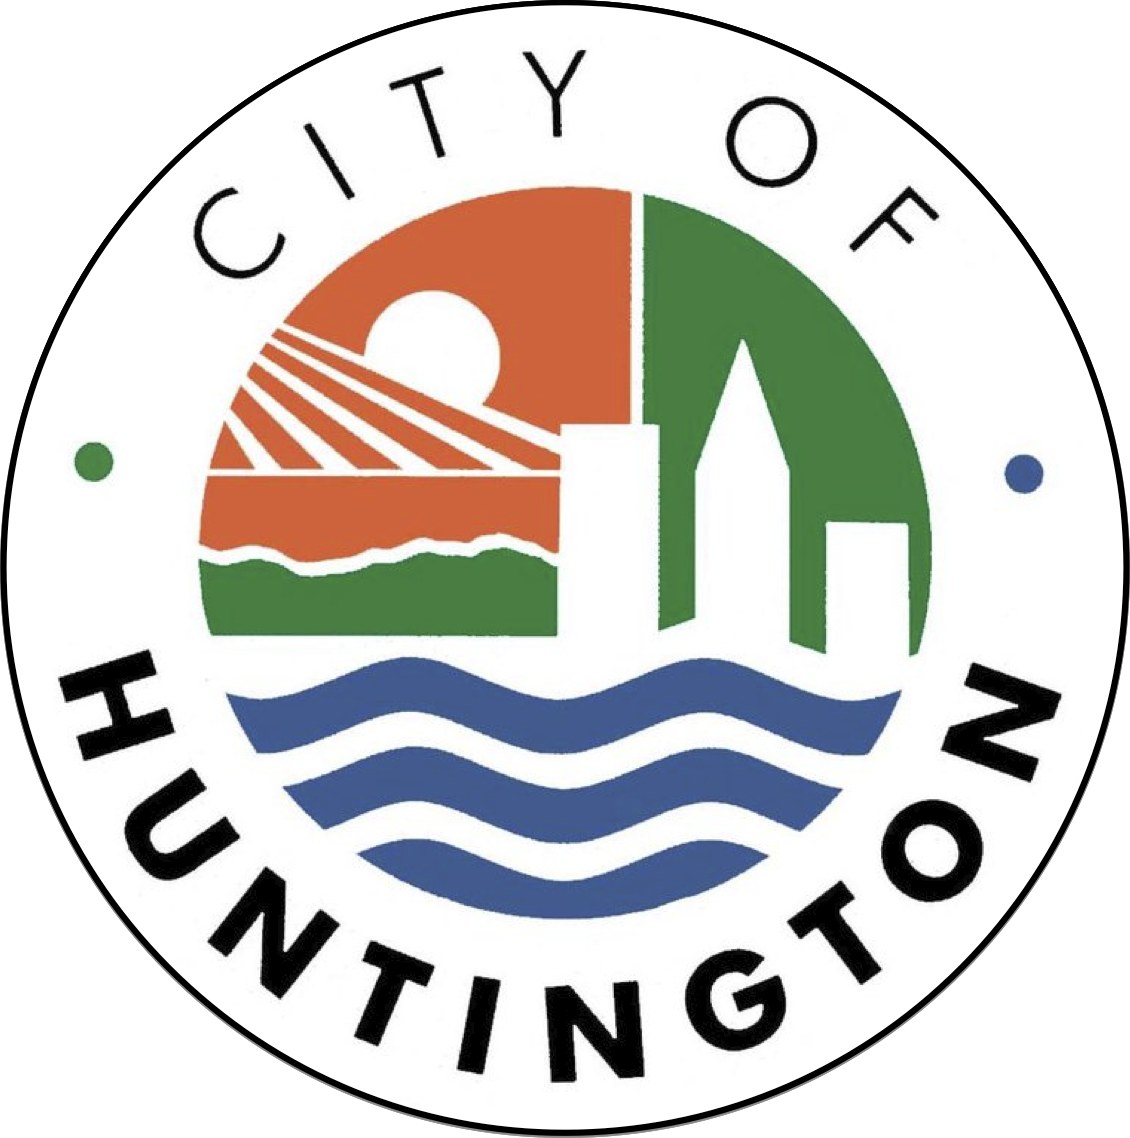 Huntington funeral homes funeral services flowers in for The huntington